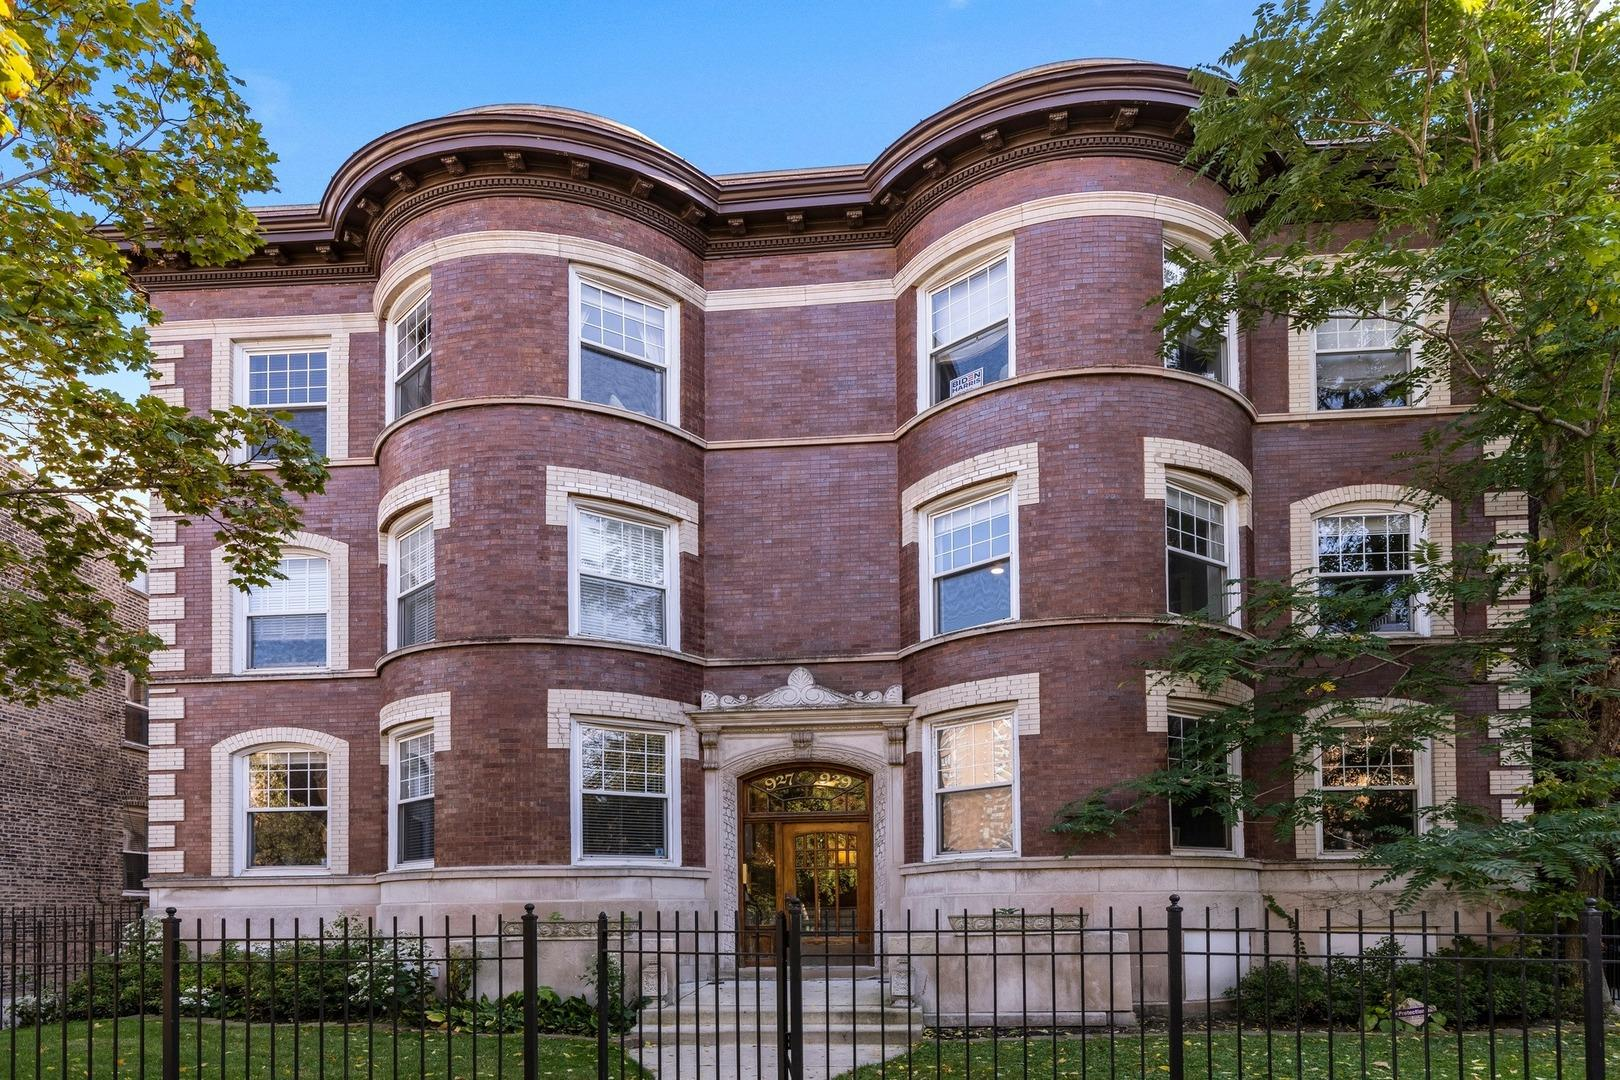 927 W BELLE PLAINE Avenue #3, Chicago, IL 60613 - #: 10906241